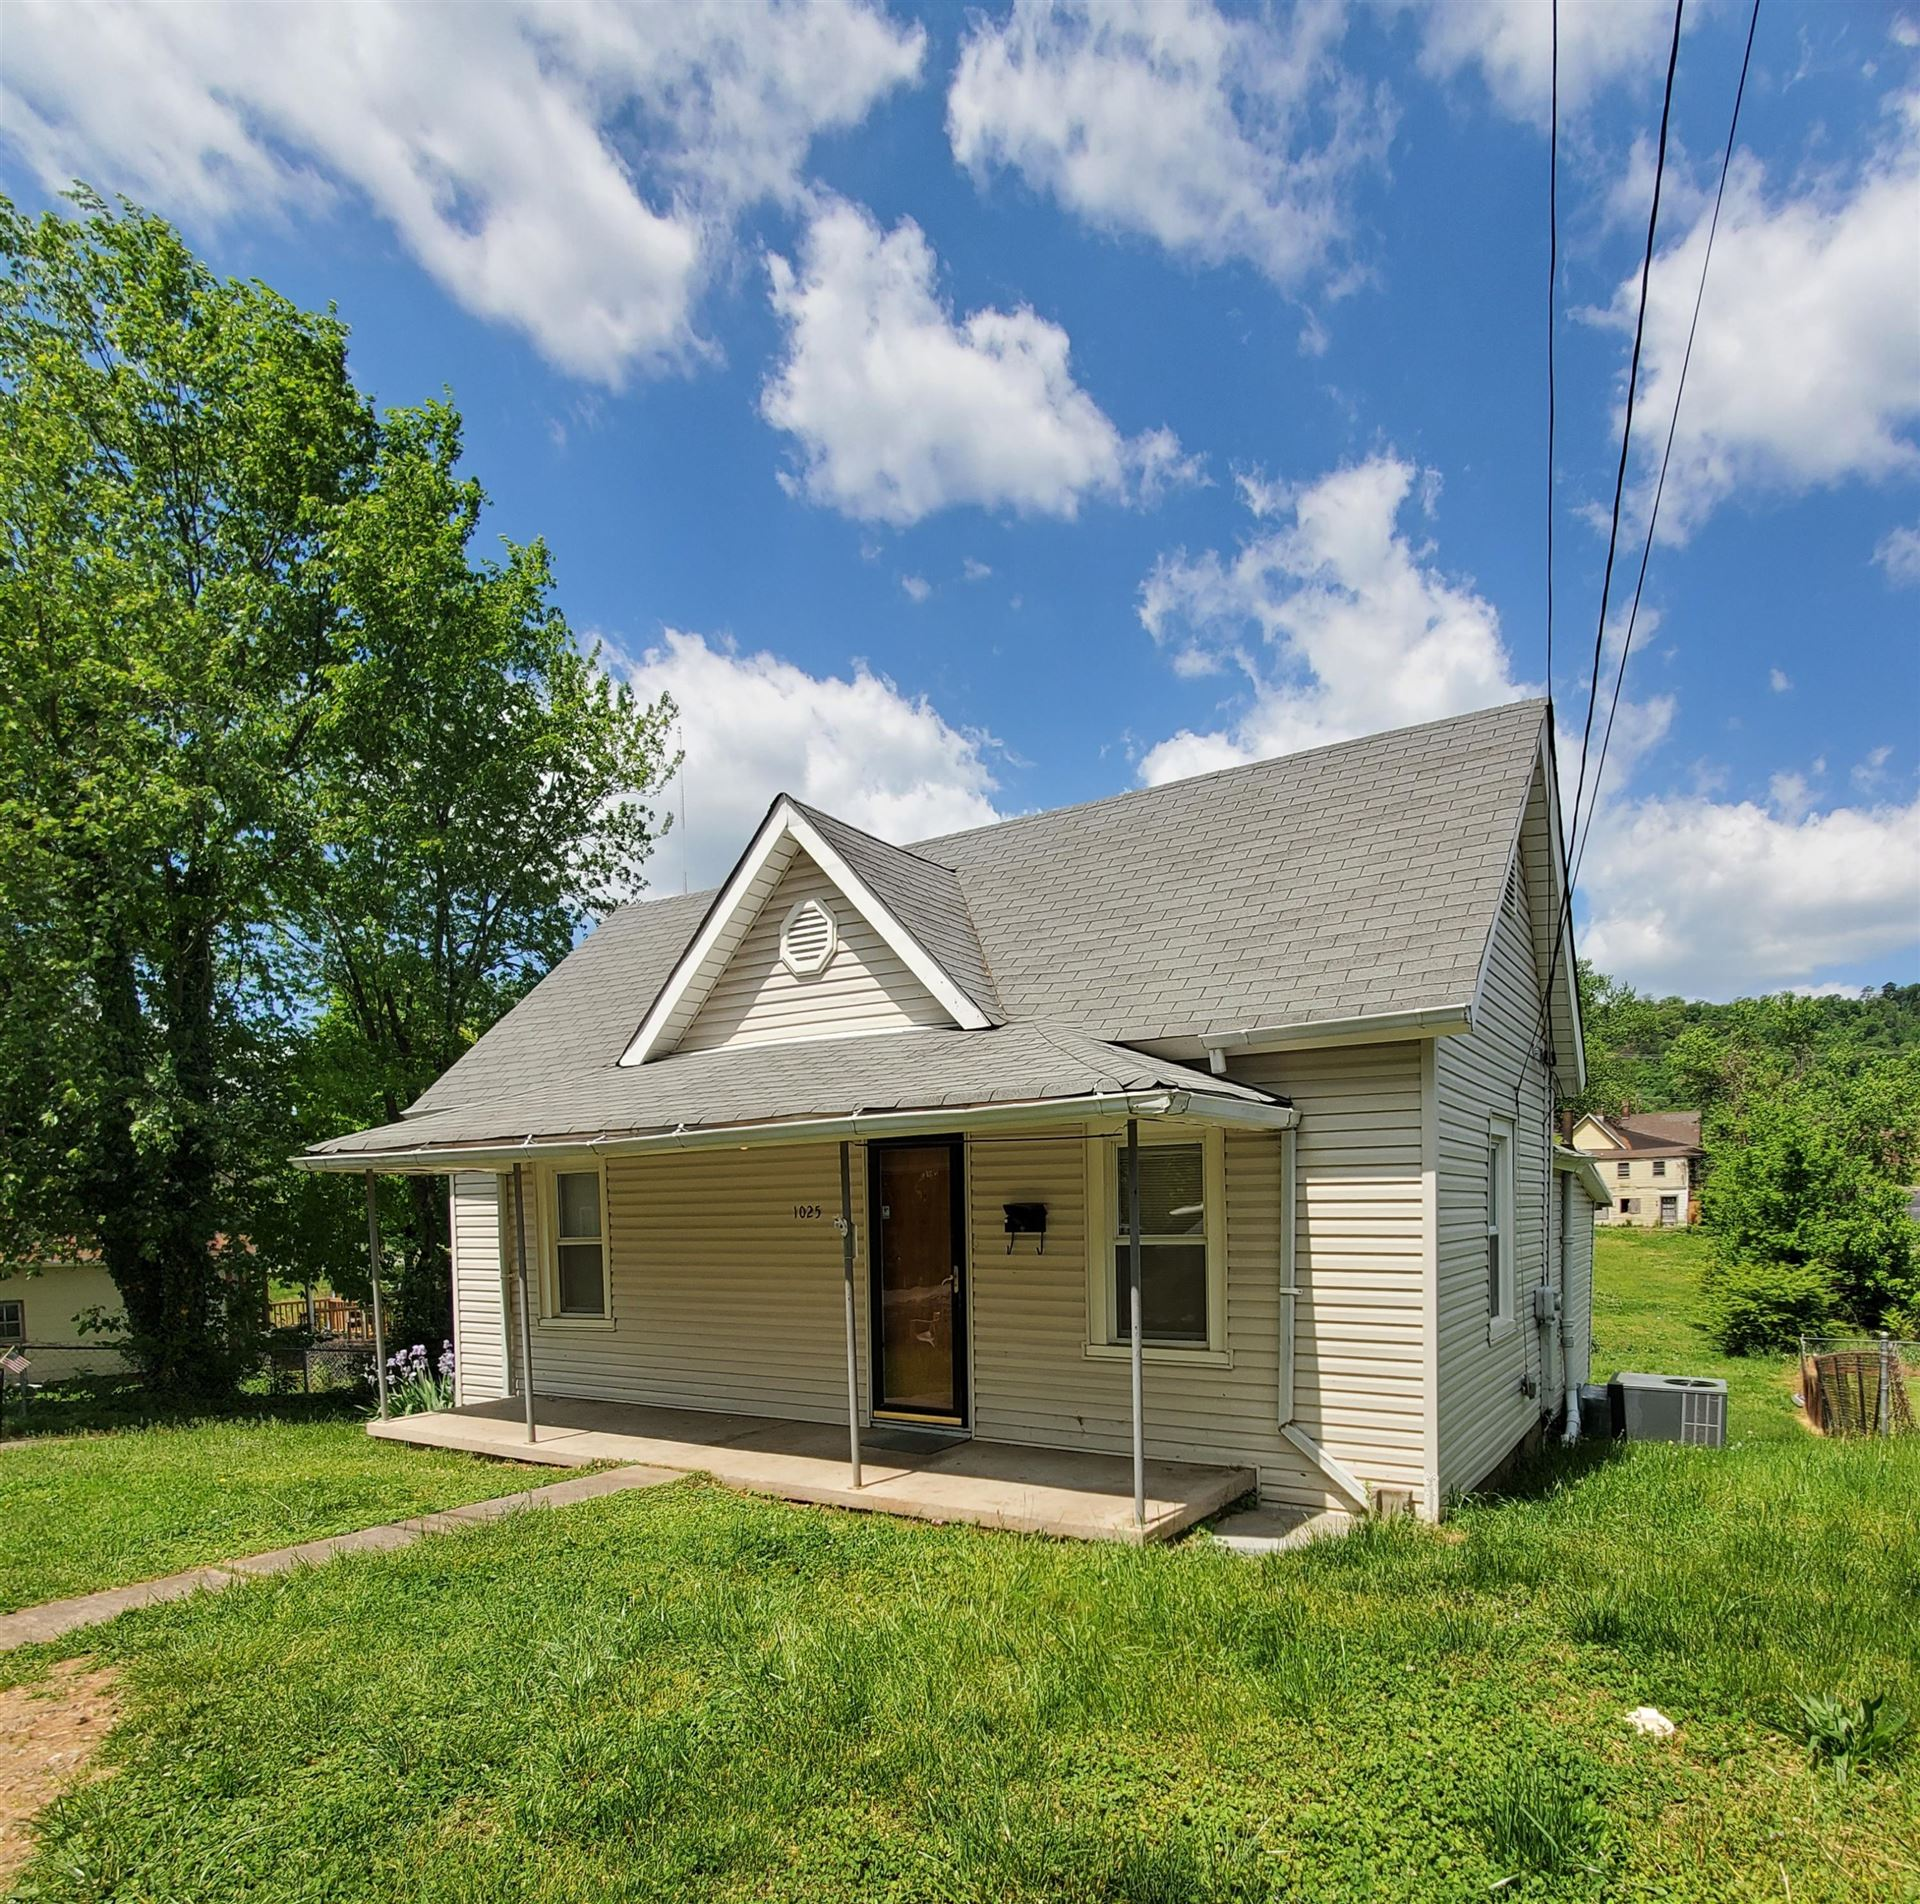 Photo of 1025 Katherine Ave, Knoxville, TN 37921 (MLS # 1151236)